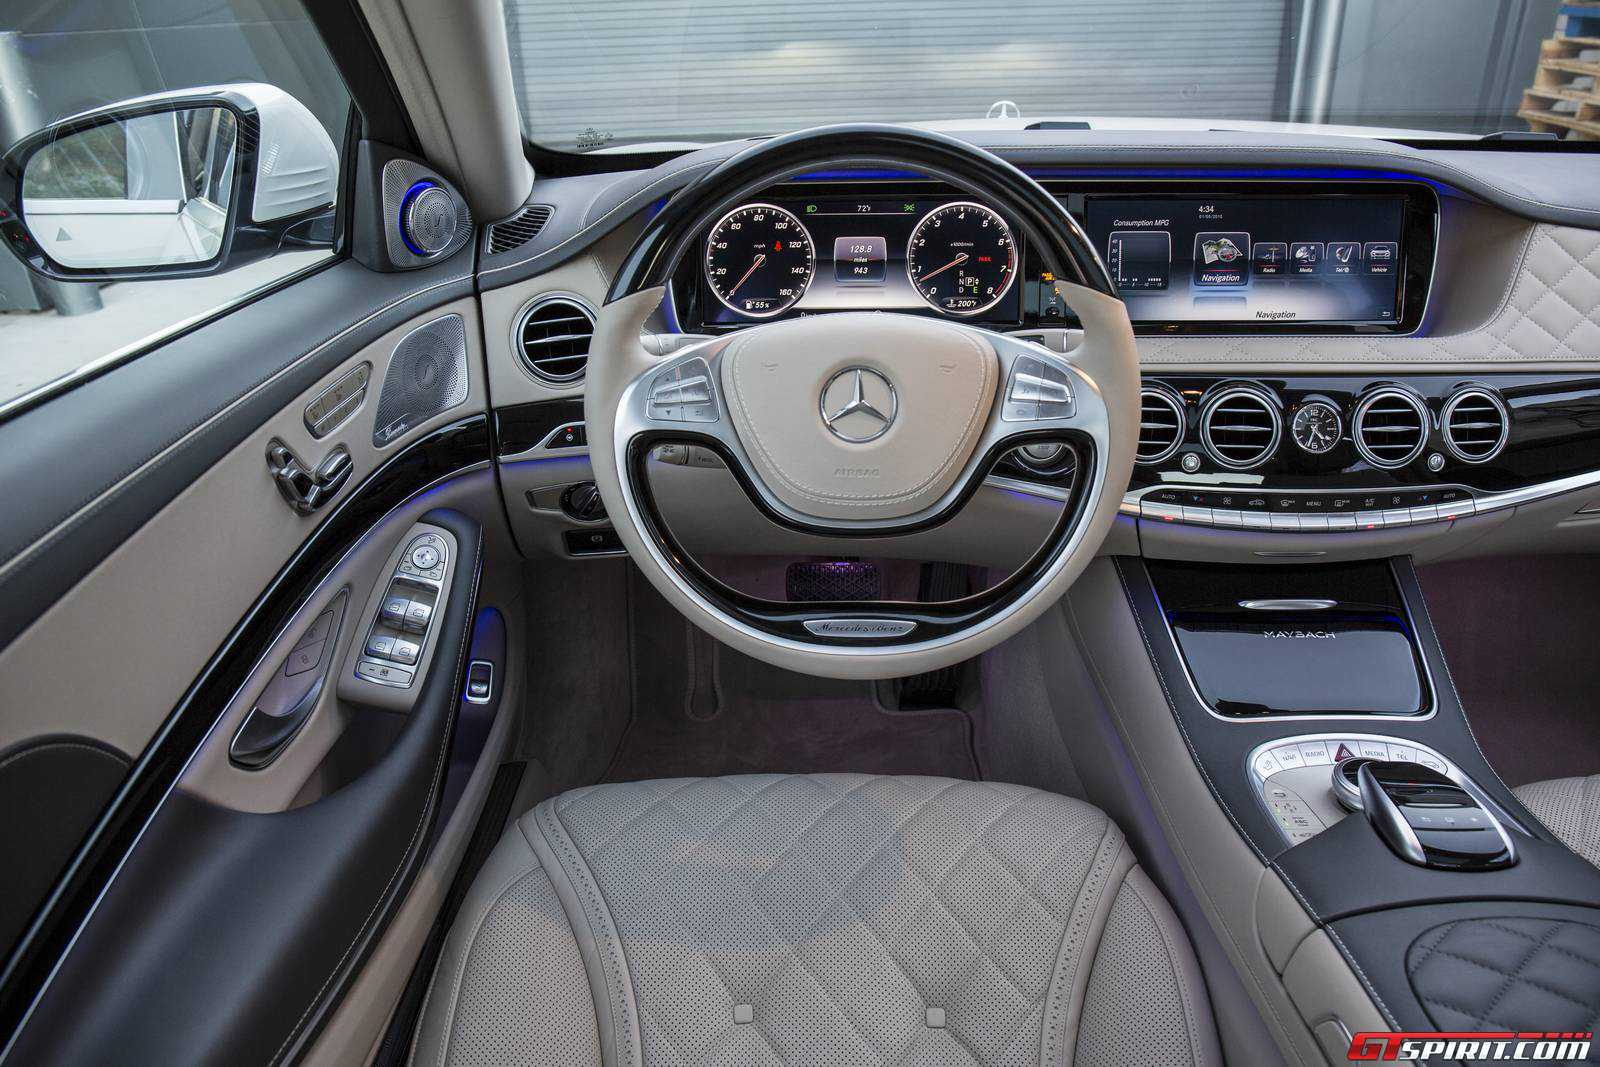 Mercedes-Maybach S600 Review - MBWorld.org Forums